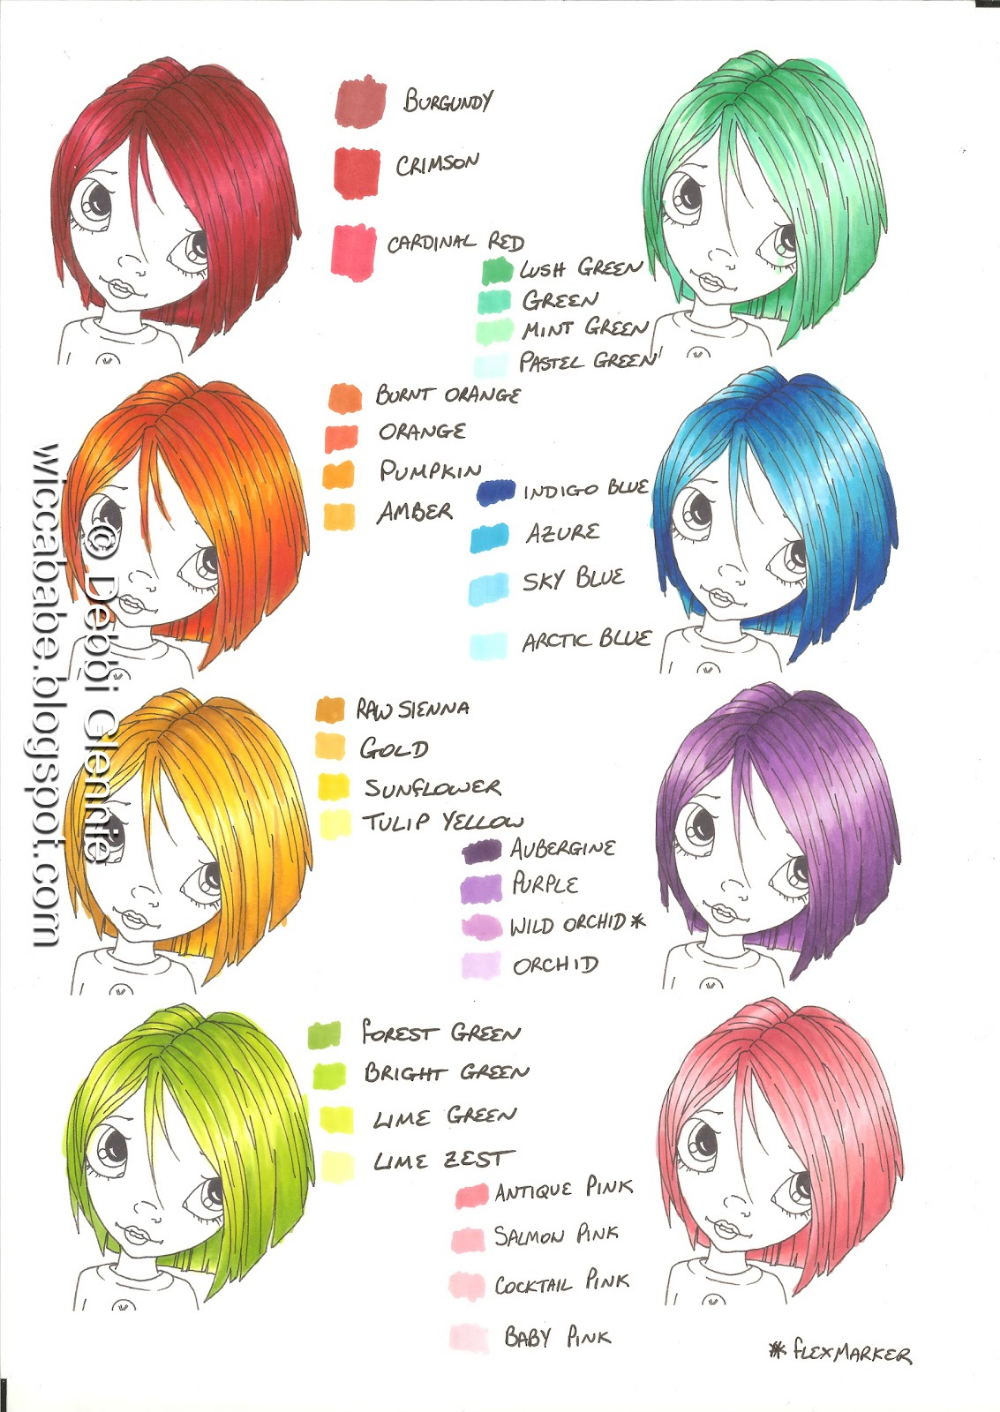 Pin By Elodie Saphoret On Coloriage Promarkers Copic Markers How To Draw Hair